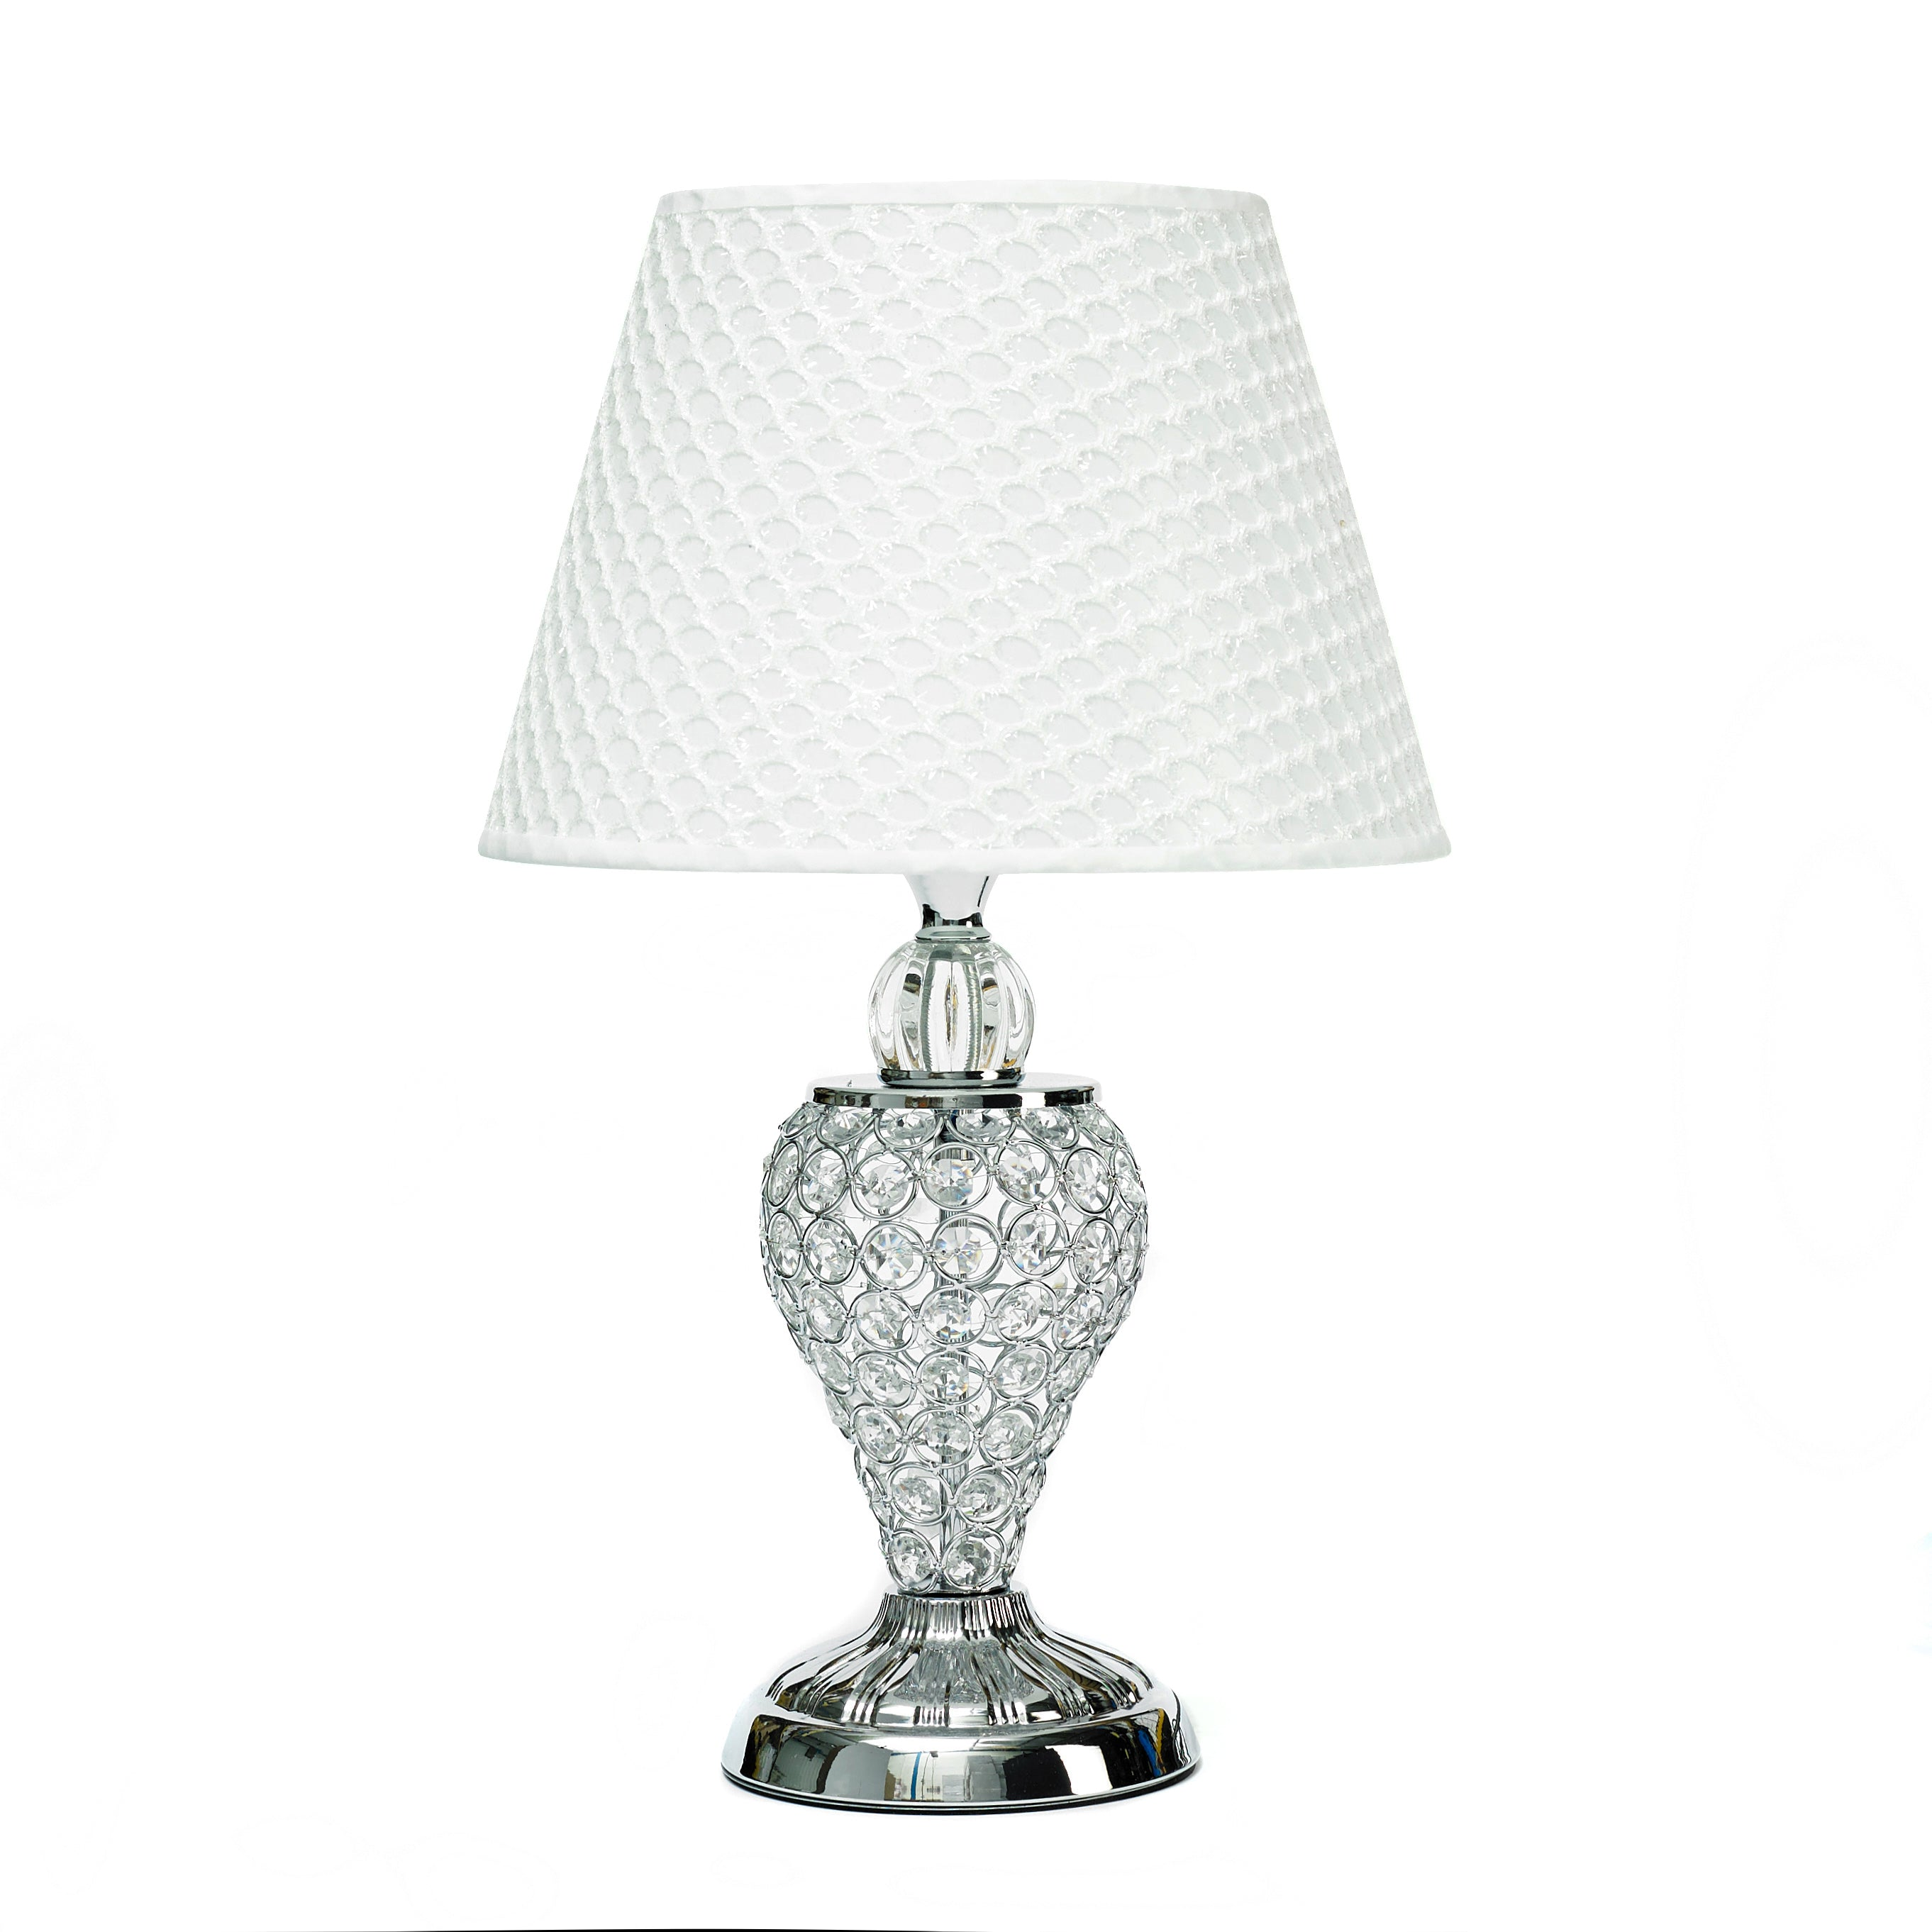 Silver Crystal Table Lamp With White Lamp Shade Interior Home Decor